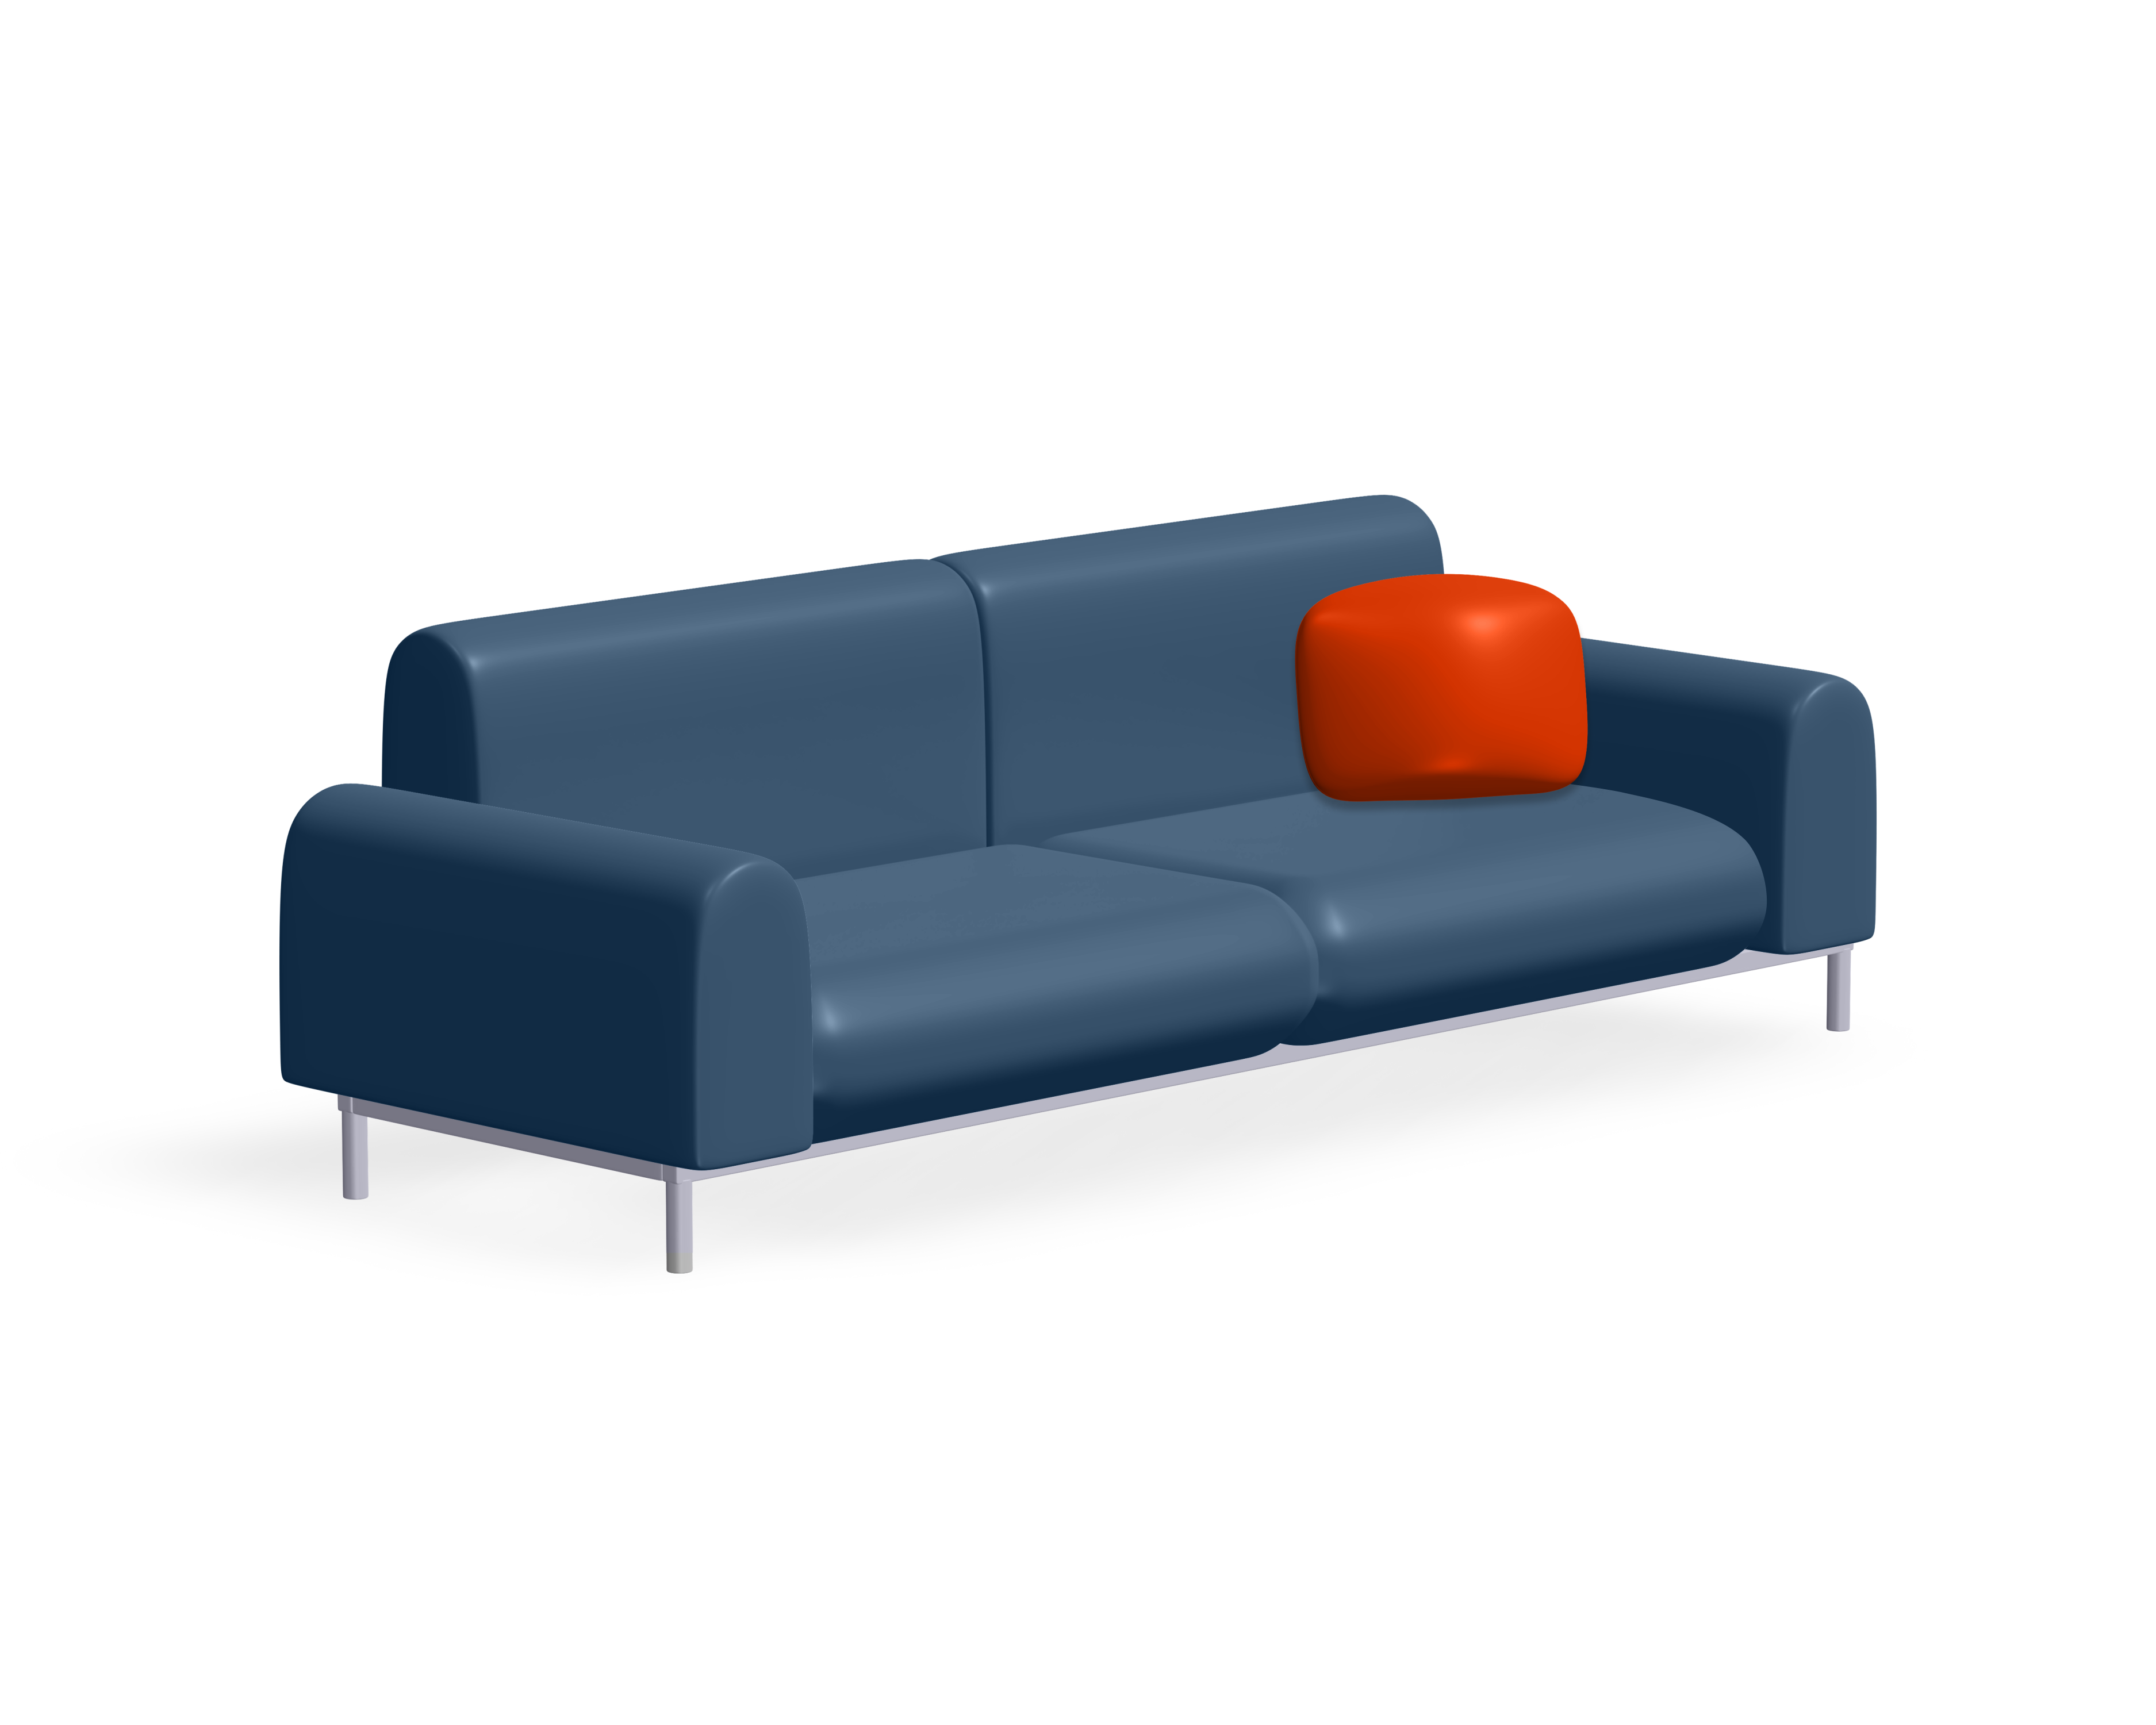 comfy sofa to sit and relax